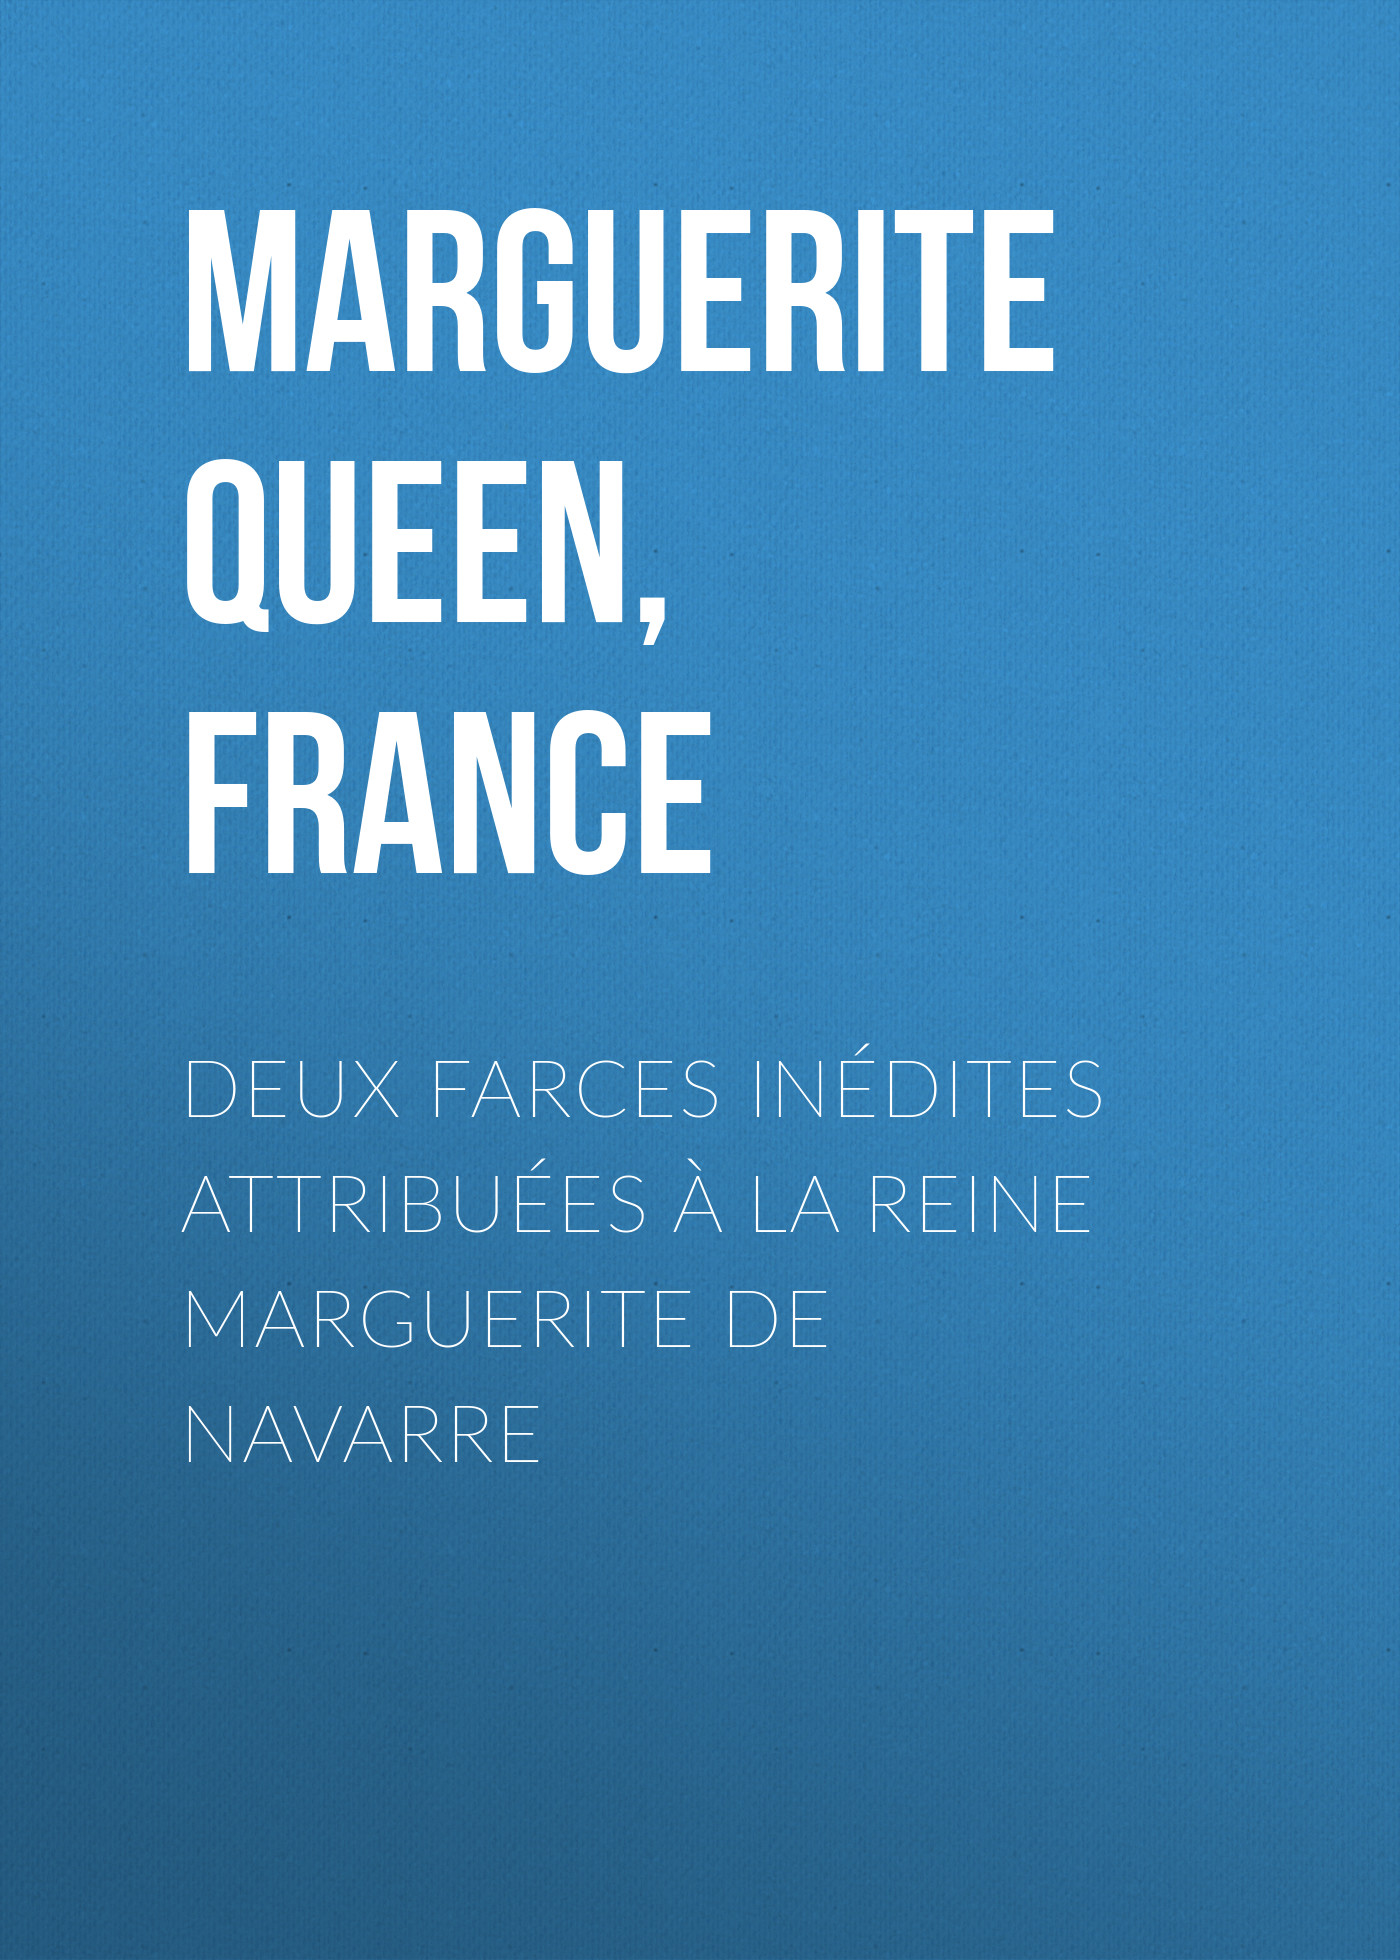 Marguerite Queen, consort of Henry IV, King of France Deux farces inédites attribuées à la reine Marguerite de Navarre the history of henry iv surnamed the great king of france and navarre